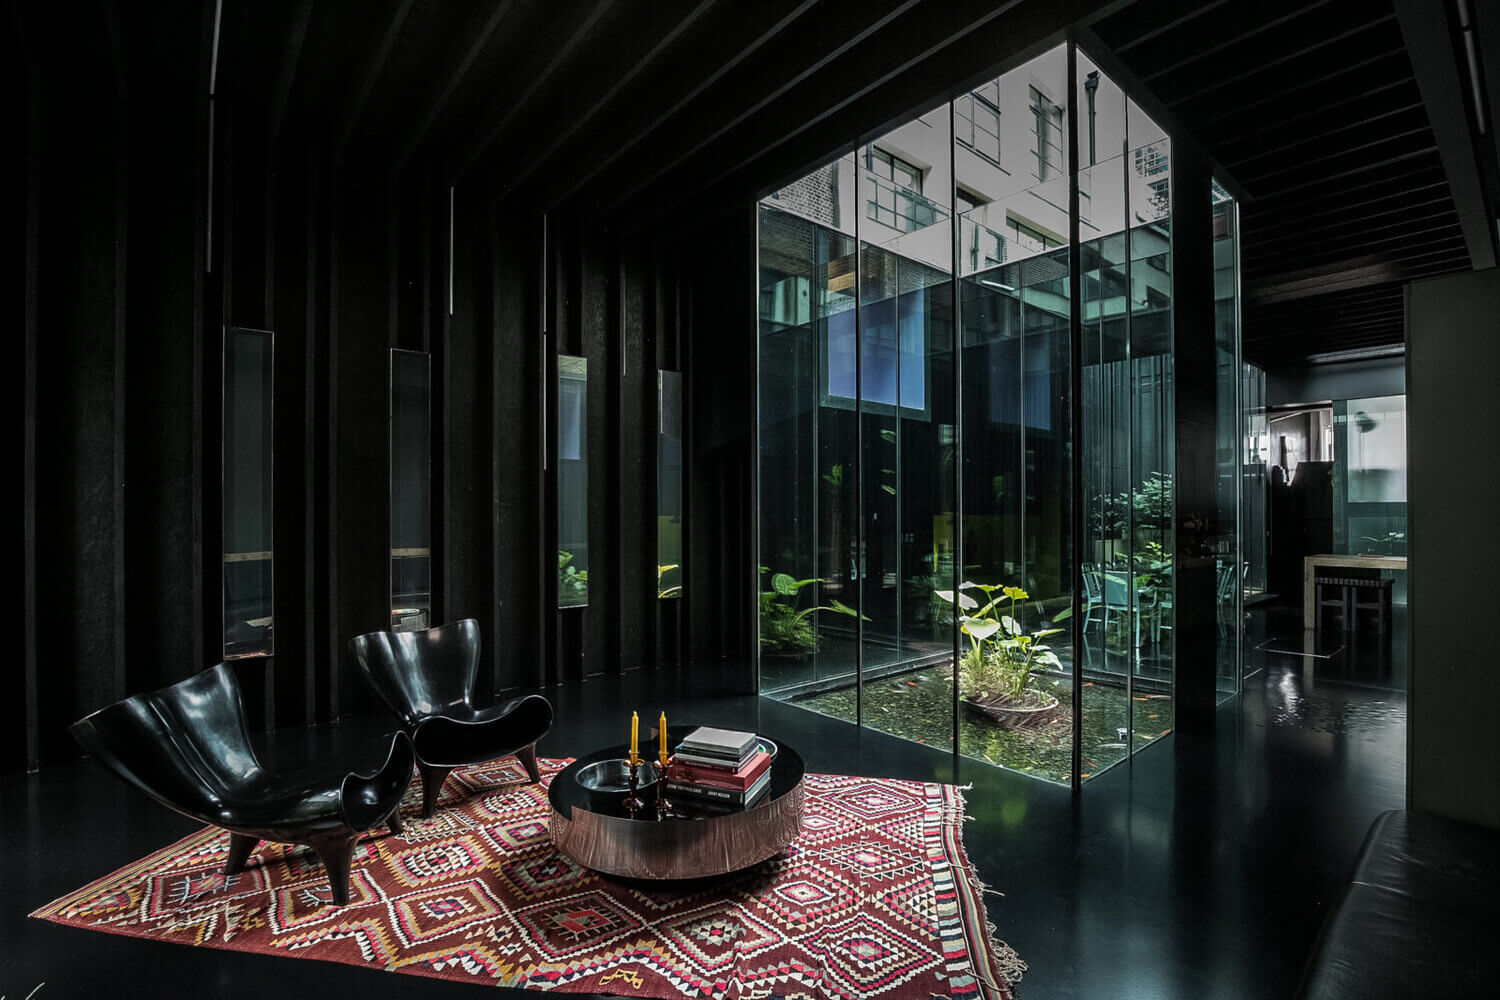 Lost House: A Dramatic Architectural Home Designed by Sir David Adjaye